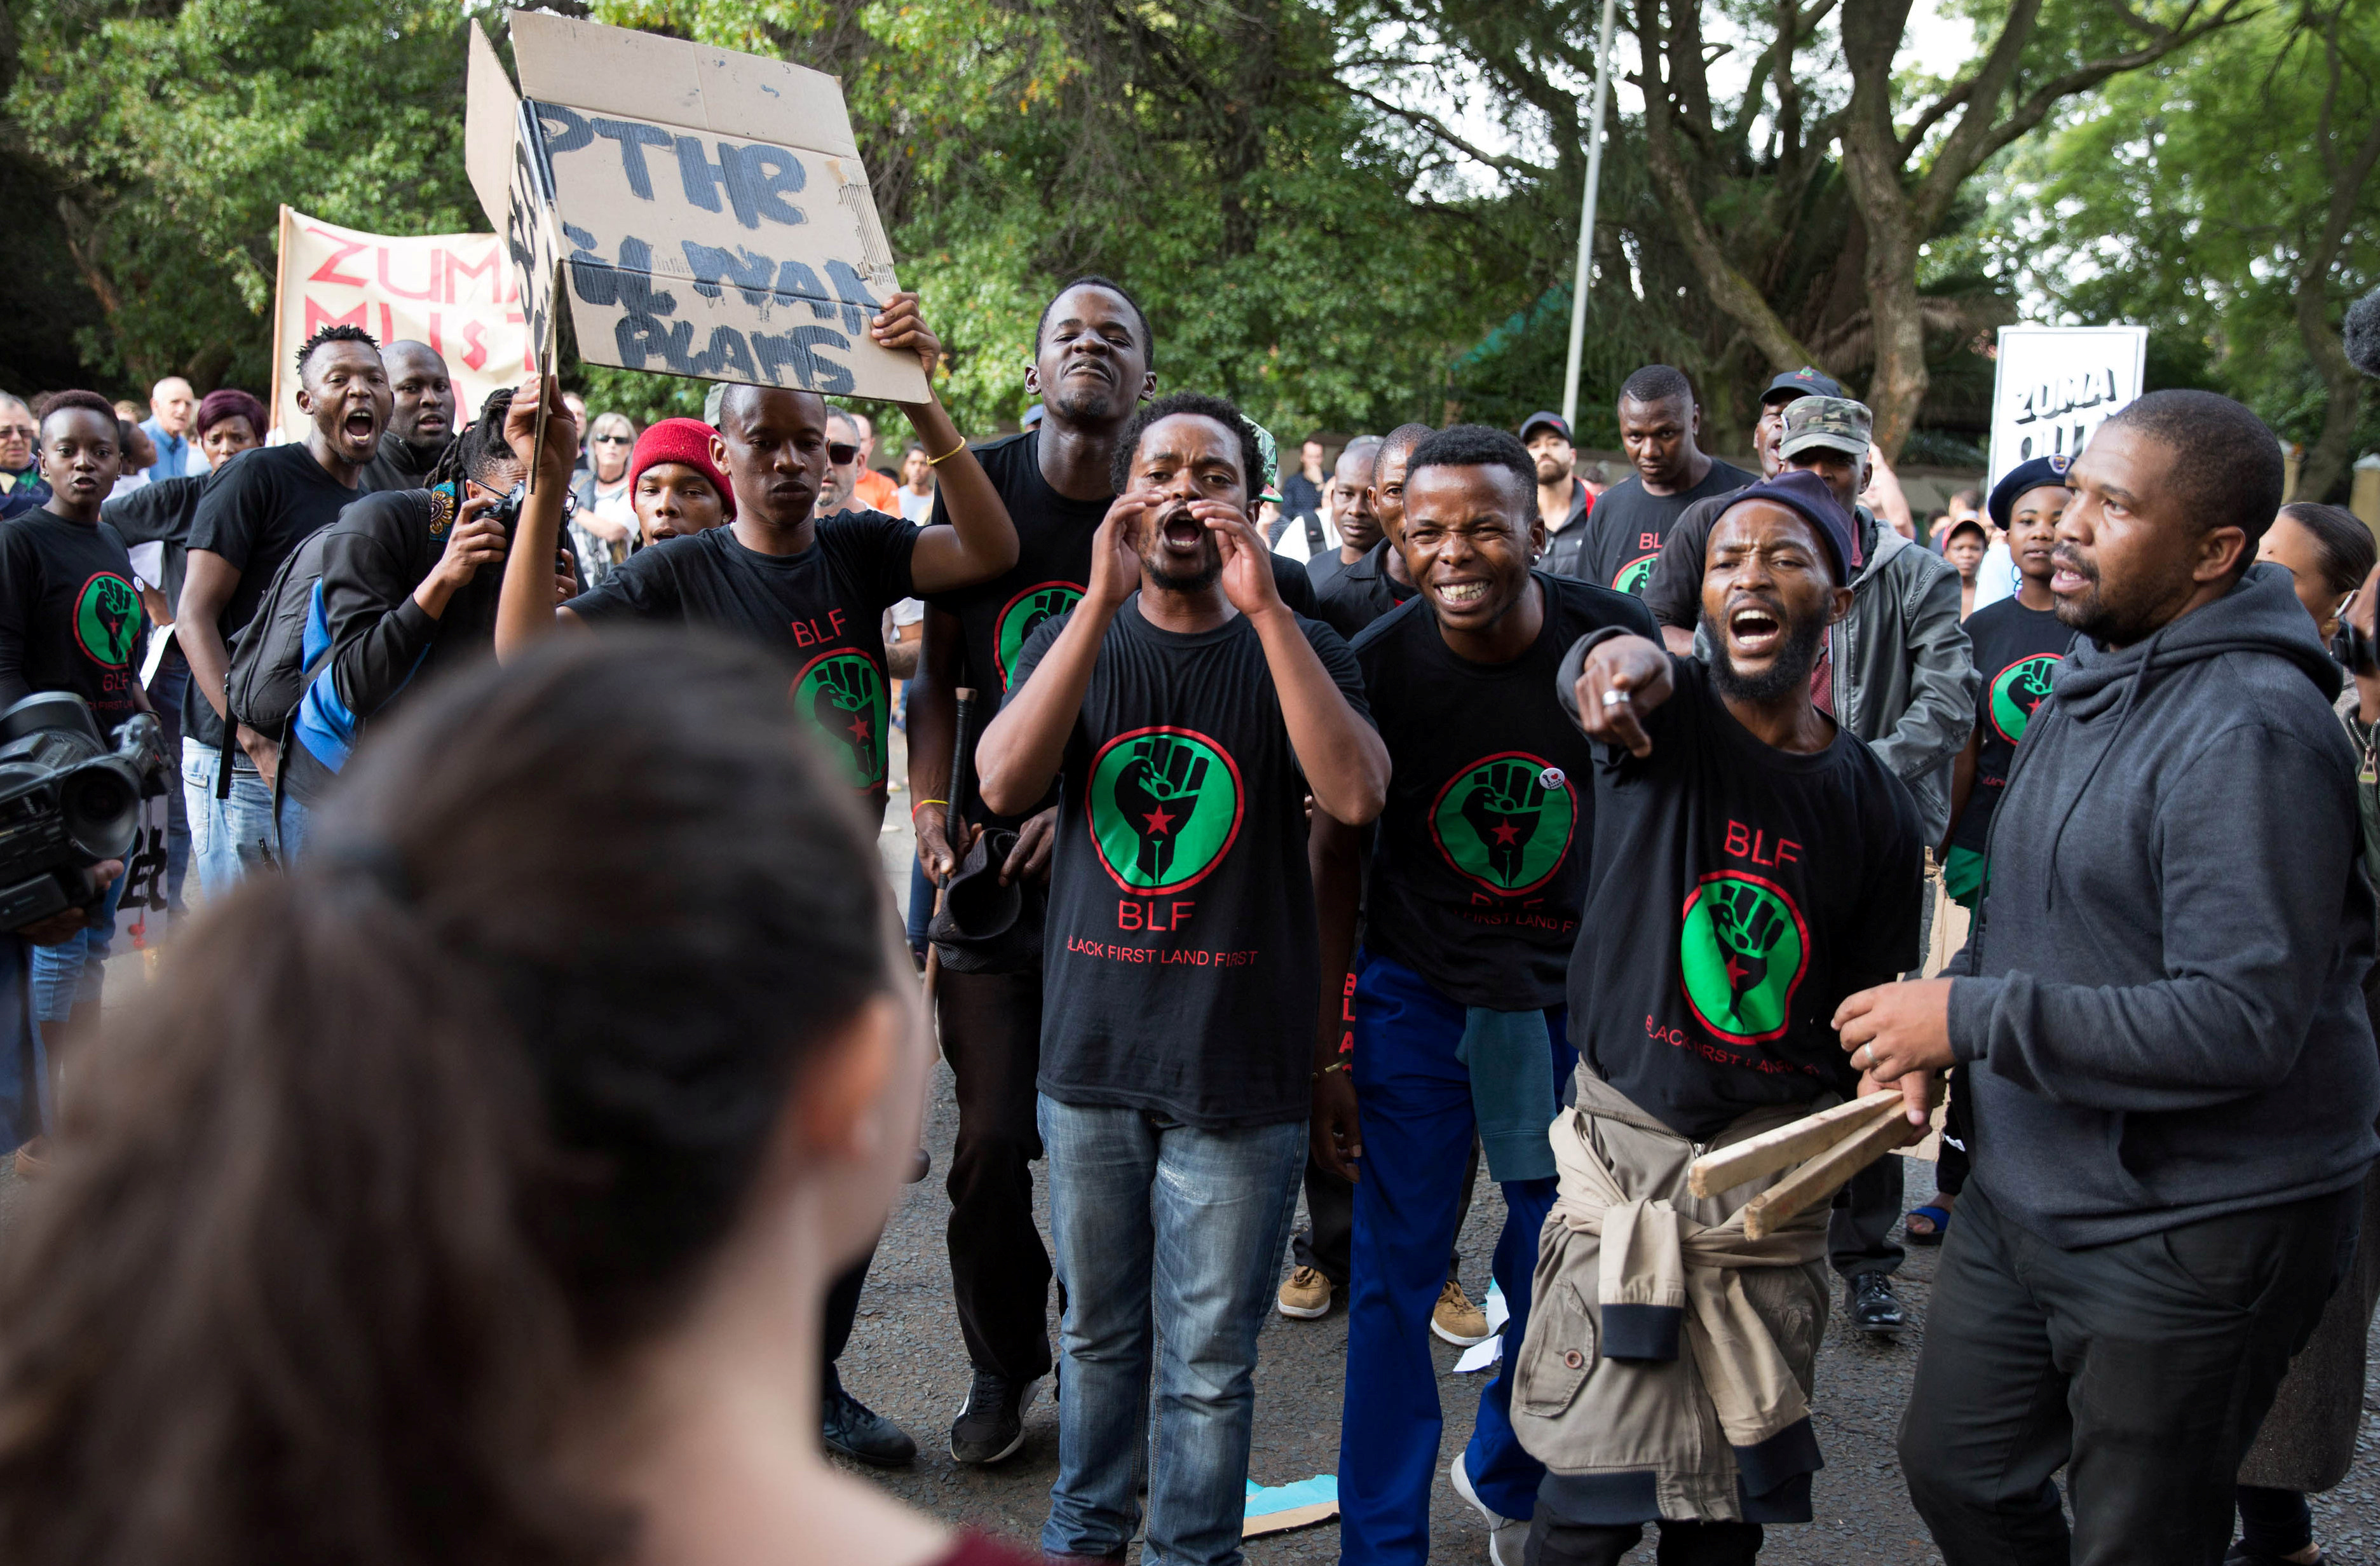 Supporters of President Jacob Zuma confront demonstrators calling for Zuma's removal outside the home of the controversial Gupta family in Johannesburg, South.